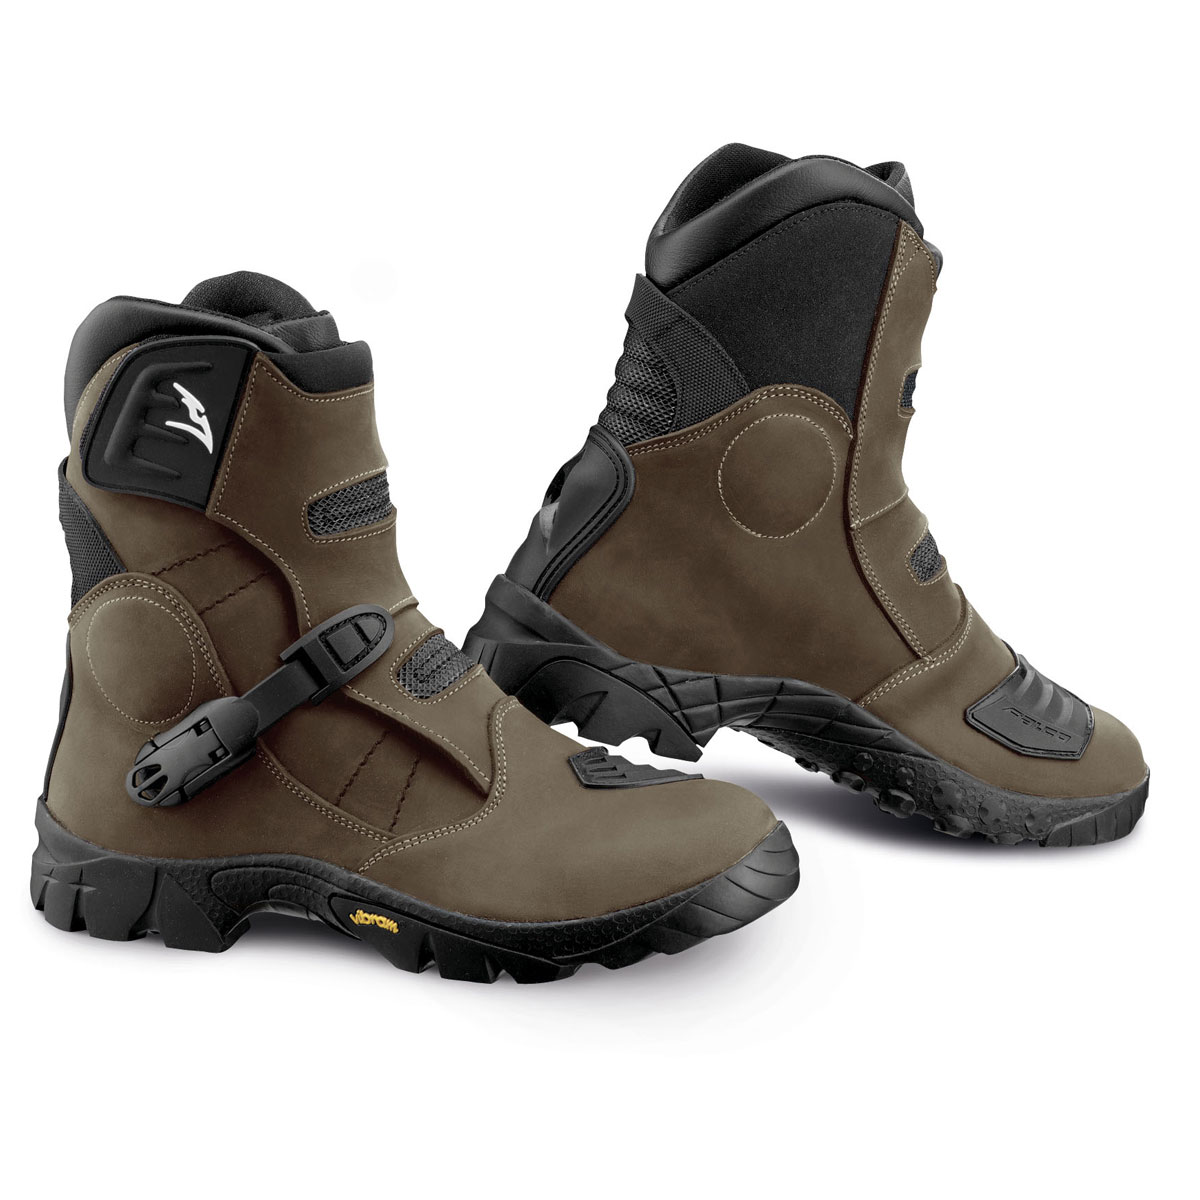 VOLT 2 ADV Short Adventure Motorcycle Boots